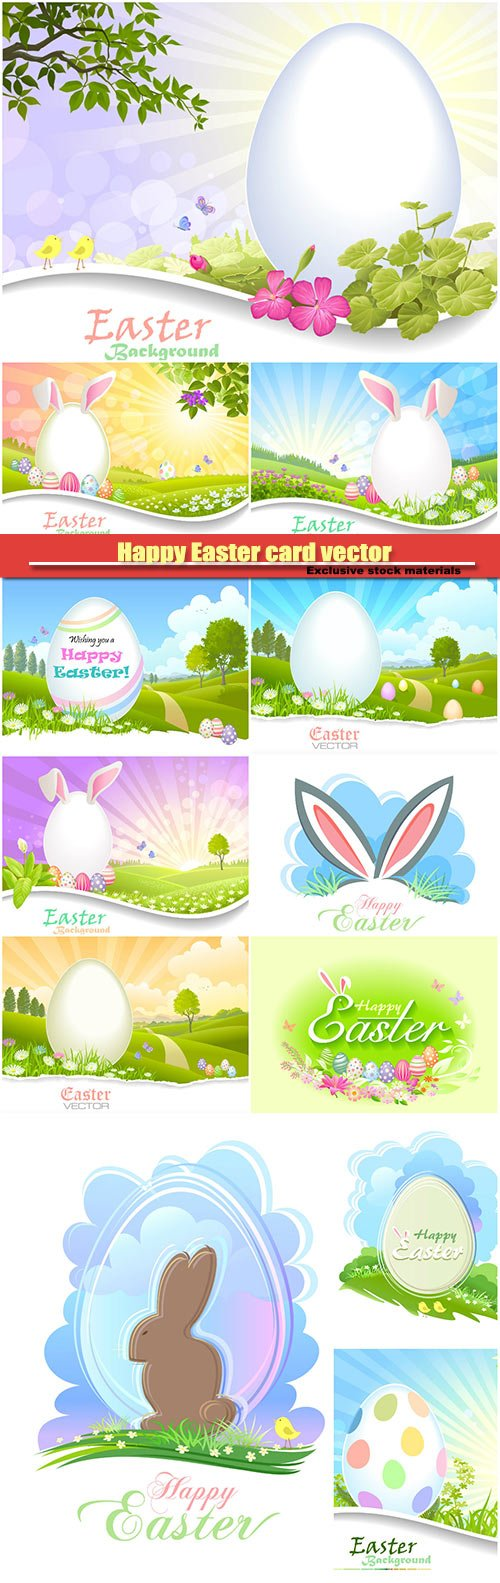 Happy Easter card vector background